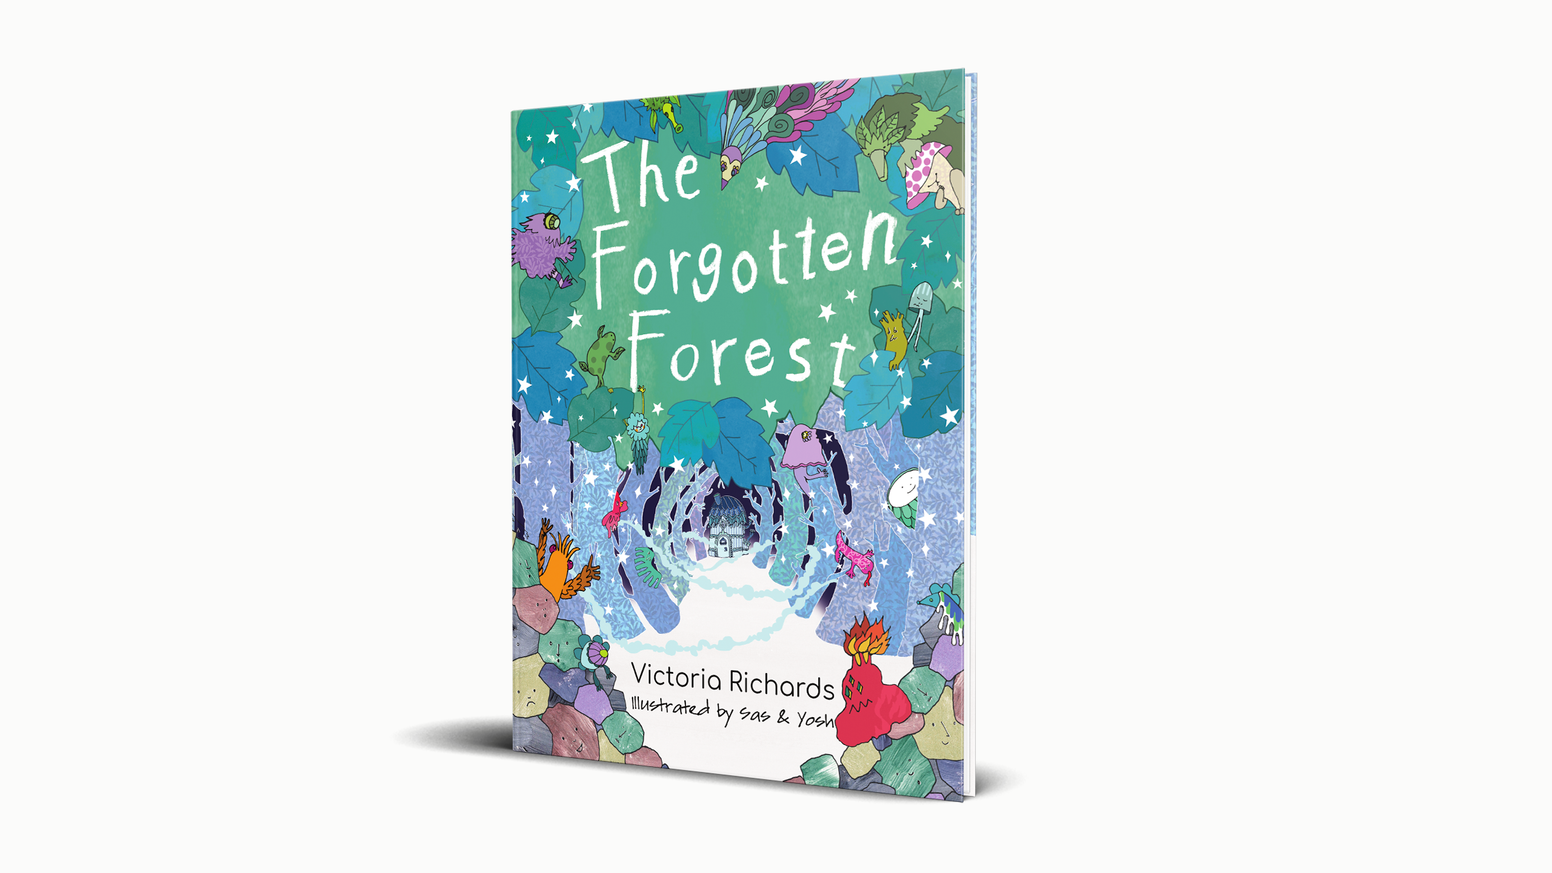 All children should get to see themselves as the hero. The Forgotten Forest is our first amazing personalised picture book!